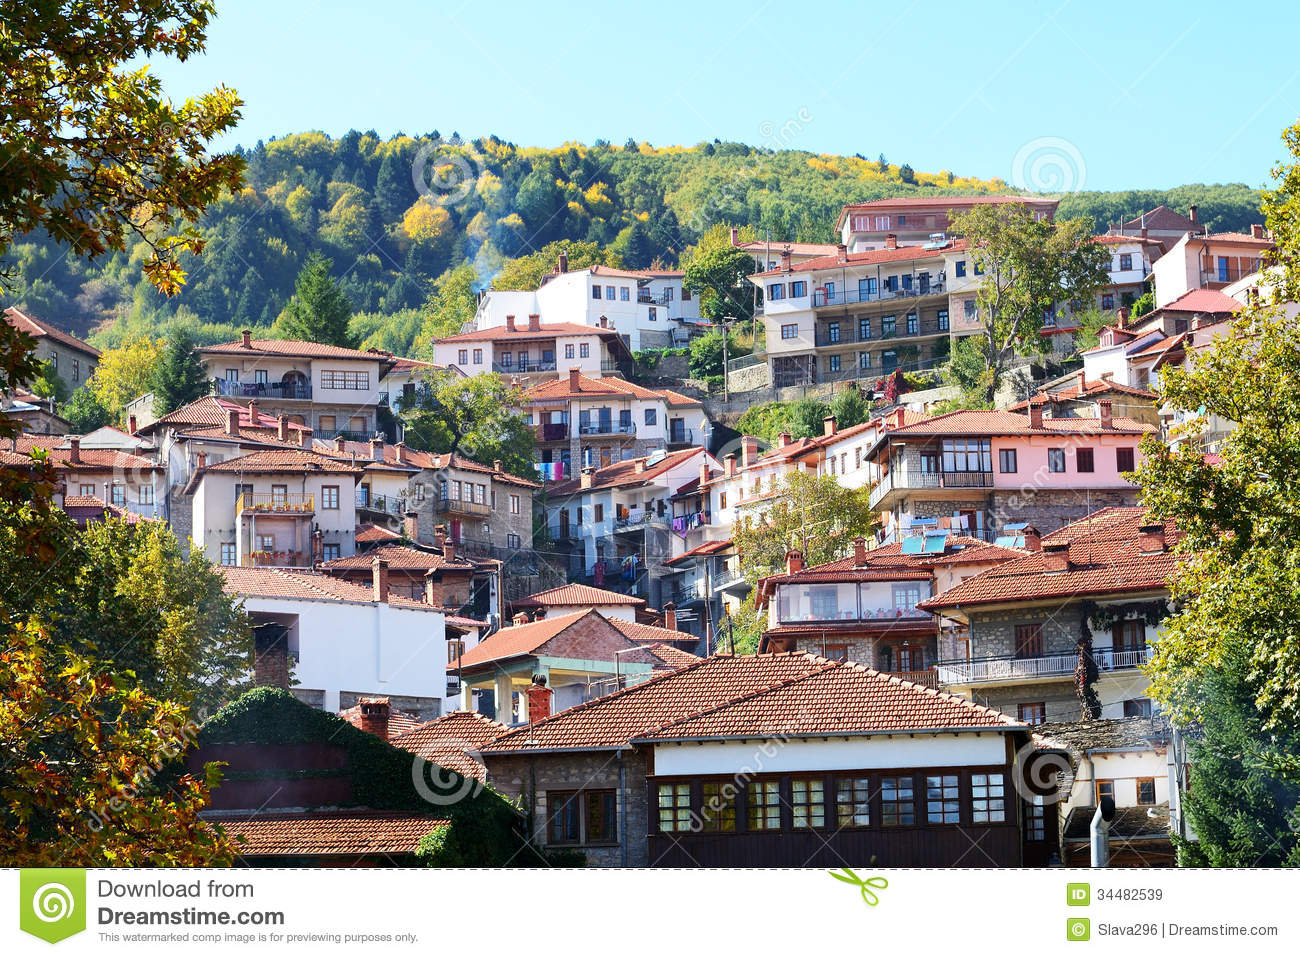 houses-metsovo-greek-village-greece-34482539 Hotel Tree House Plans on tree forts, diy treehouse plans, tree houses for girls, tree design, tree mansion, deck plans, tree houses in california, tree houses for rent, log home plans, tree houses for dummies, tree houses for teenagers, playhouse plans, tree houses for adults, tree houses for boys, one tree treehouse plans, tree stand plans, tipi plans, swing set plans, yurt plans,